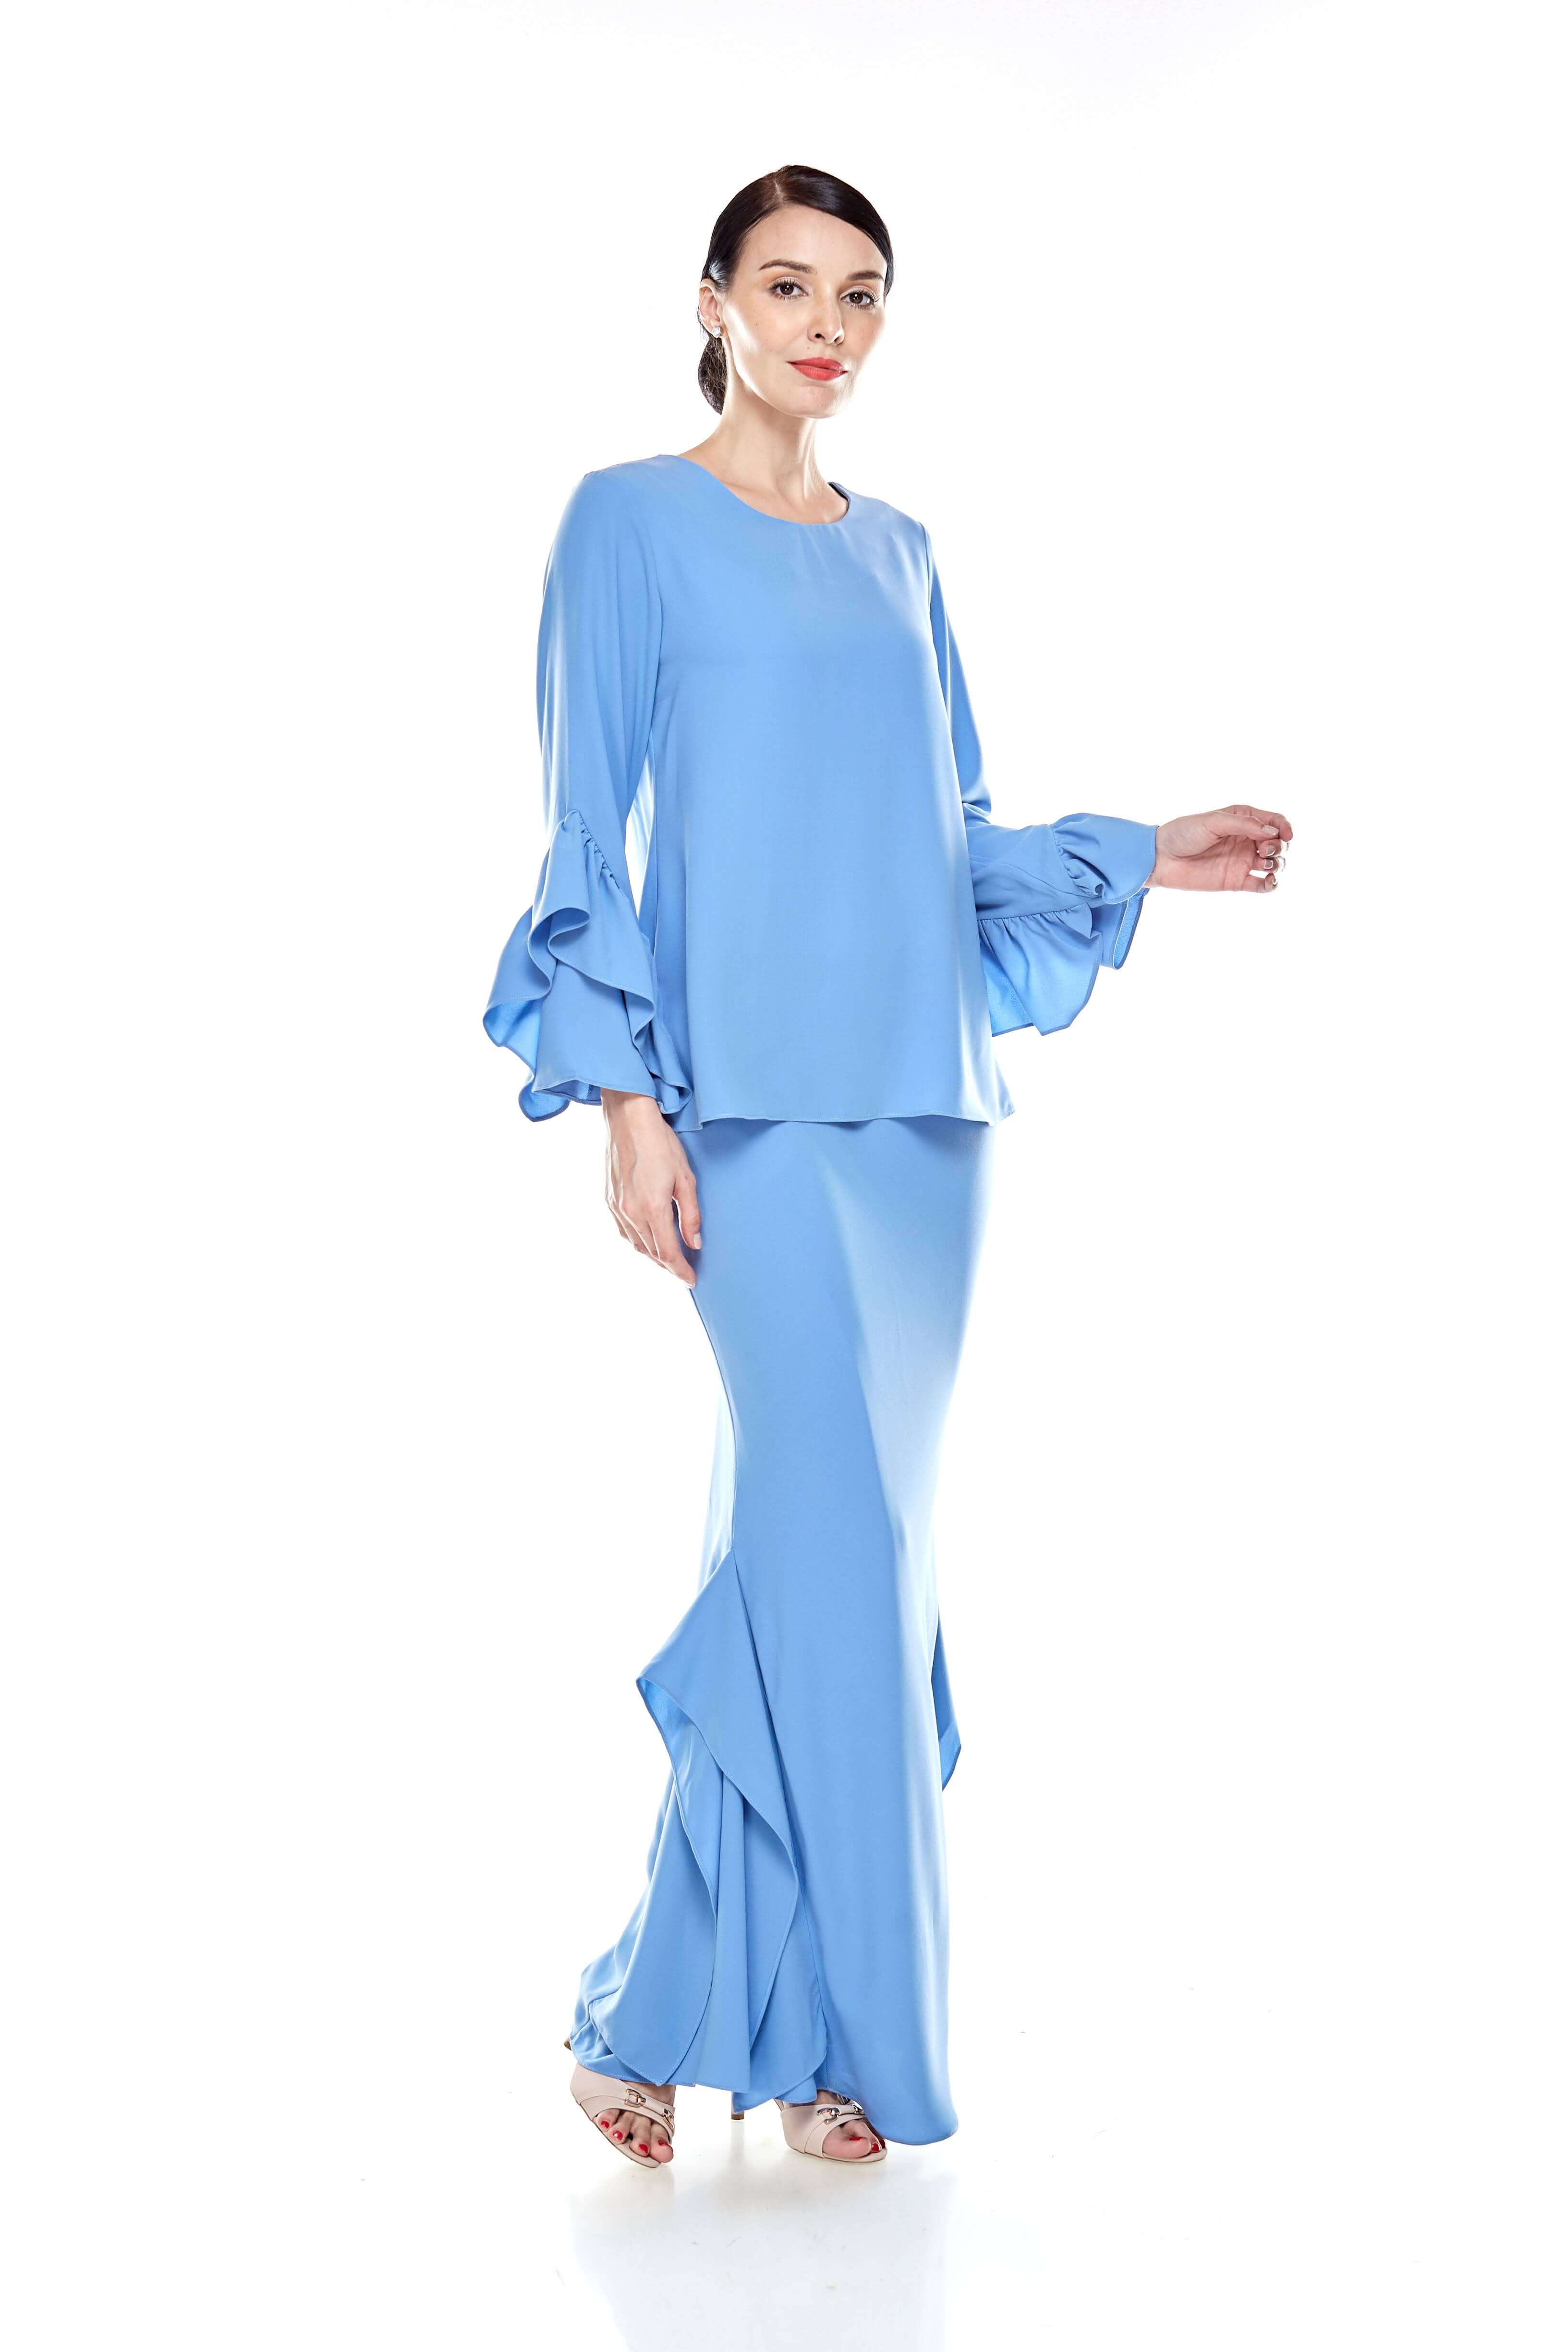 Baby Blue Round Neck Top With Ruffle Sleeve